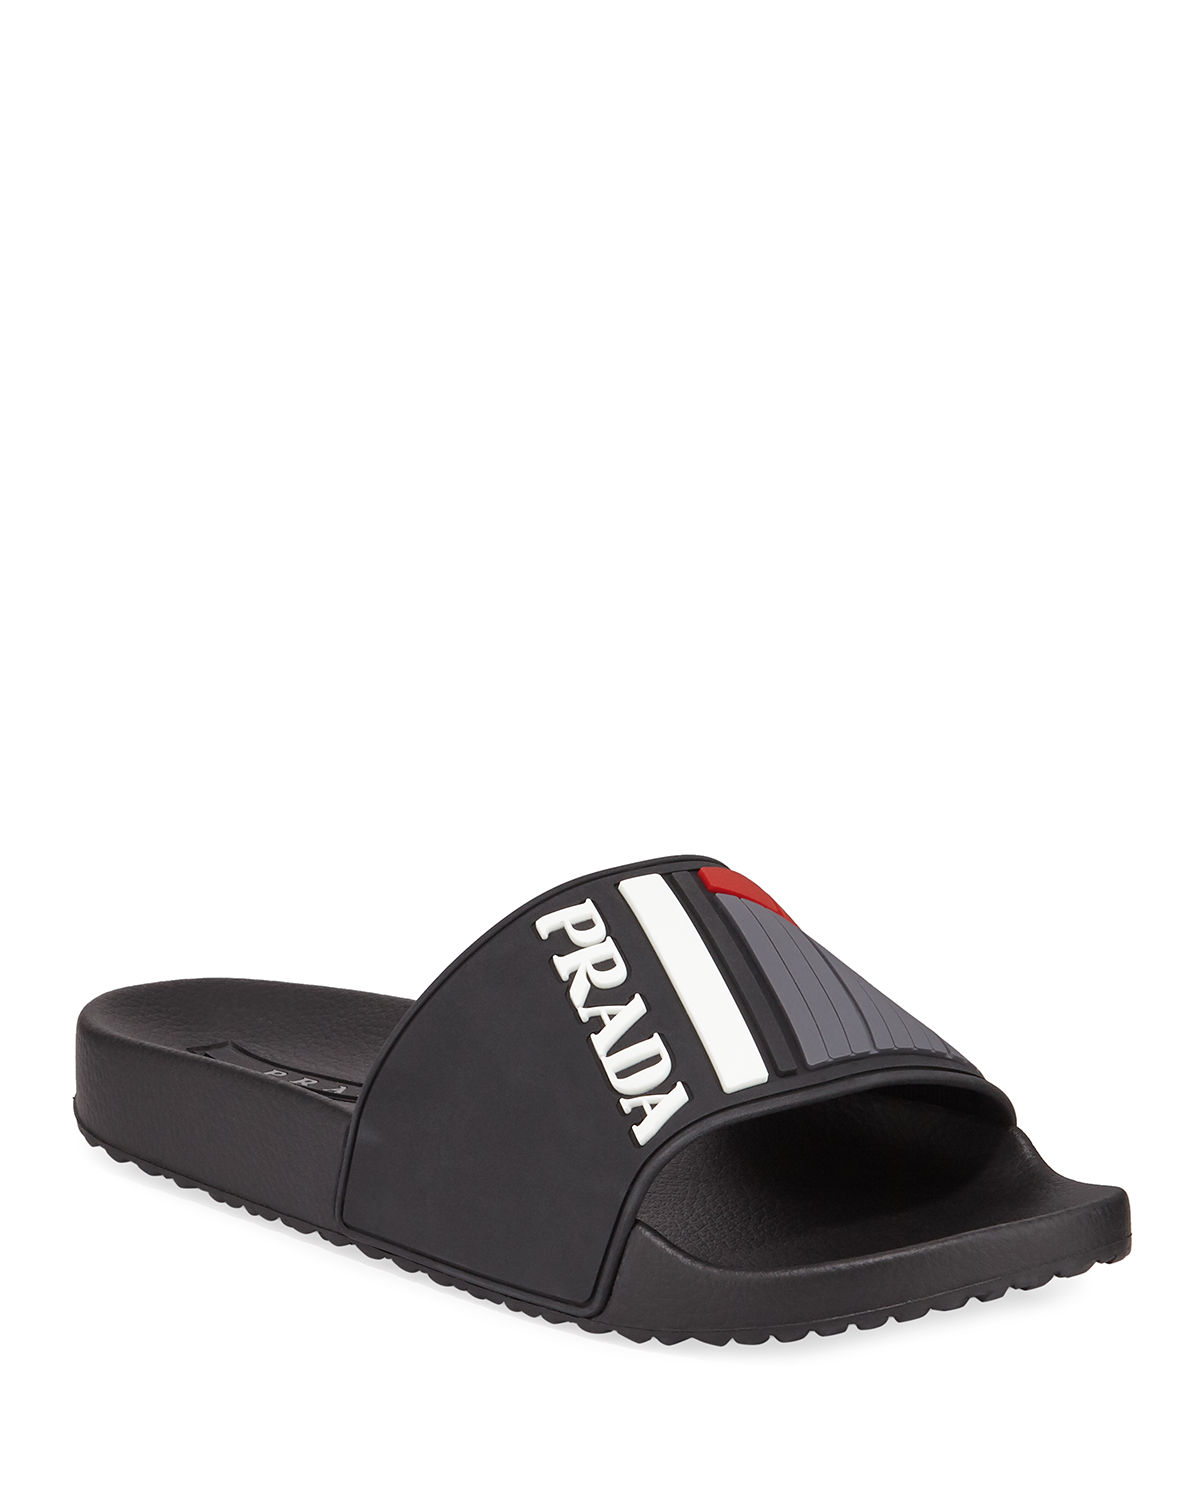 903ccc290 Prada Men s Logo Rubber Slide Sandals